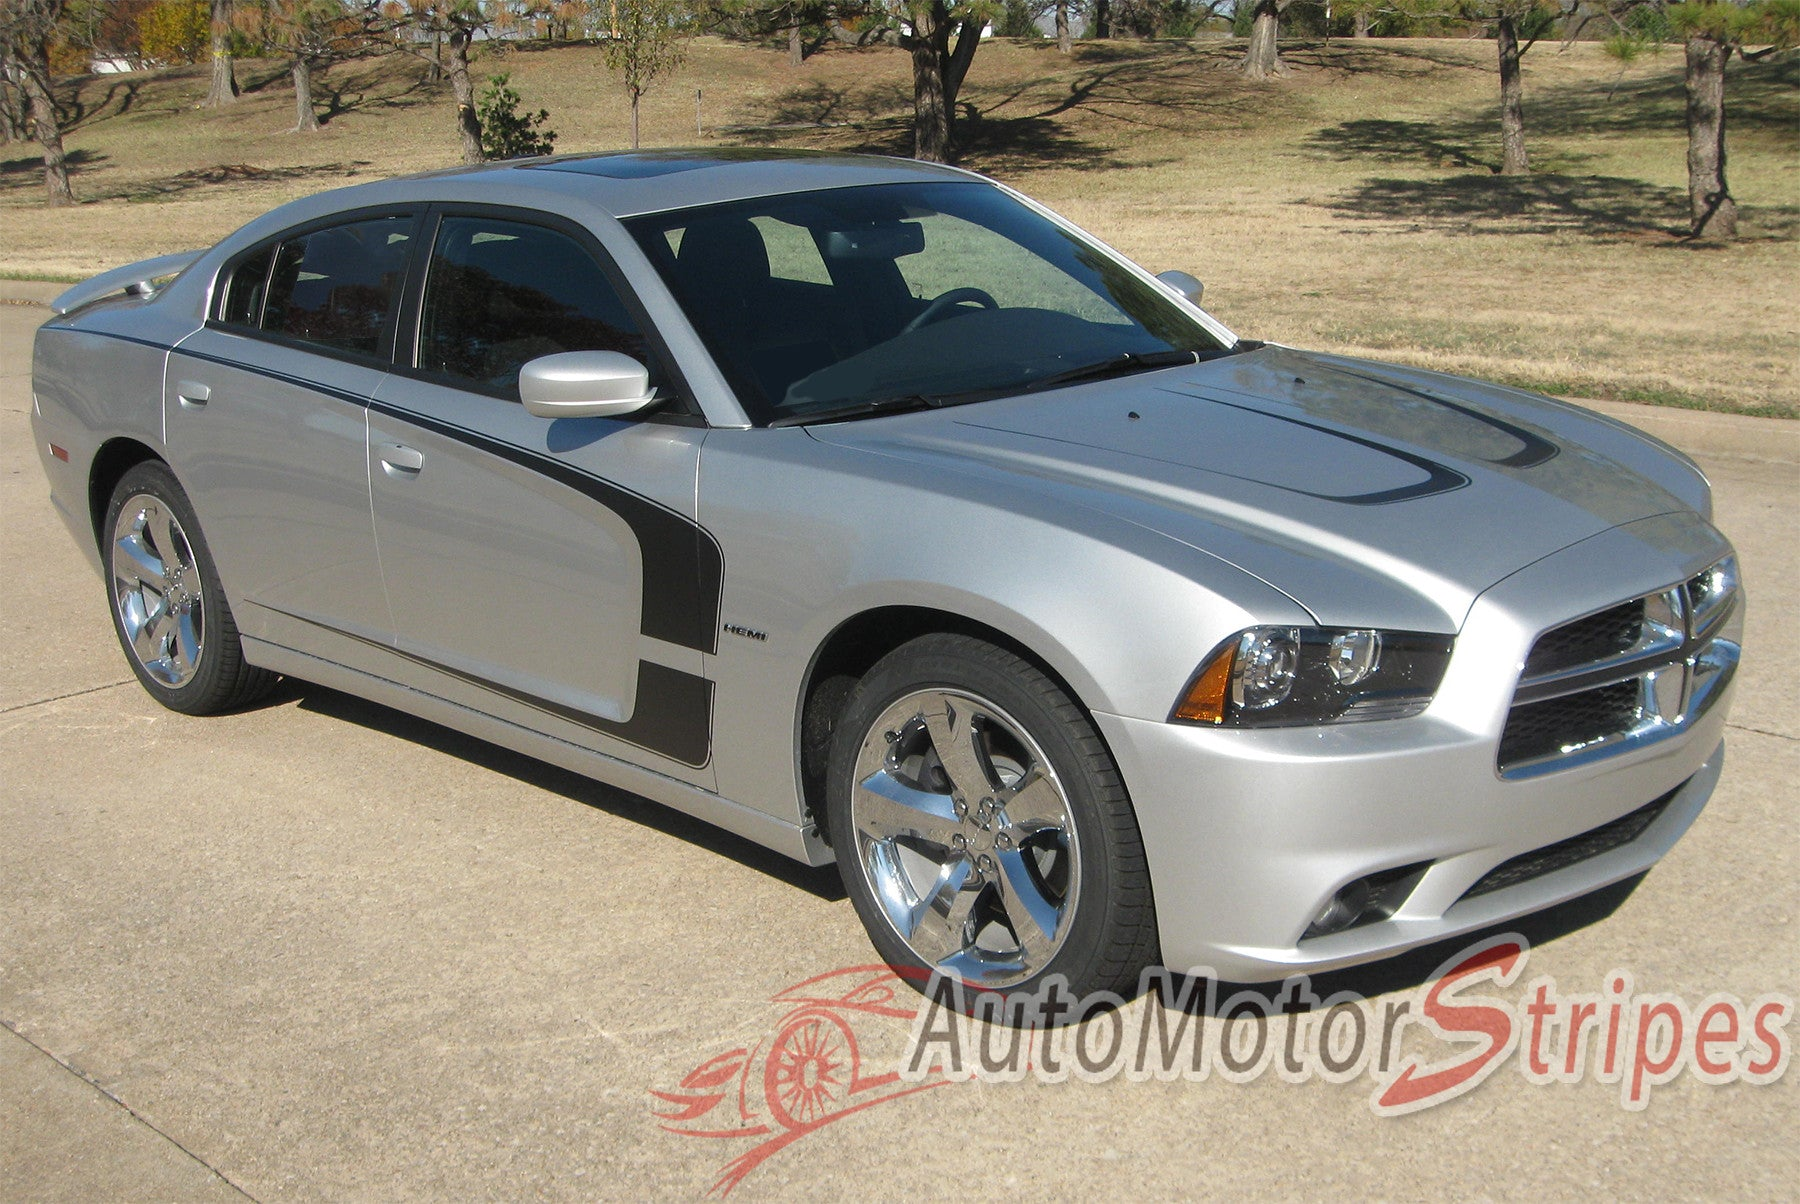 2011 2014 Dodge Charger Hood Stripes Scallop Decals Vinyl